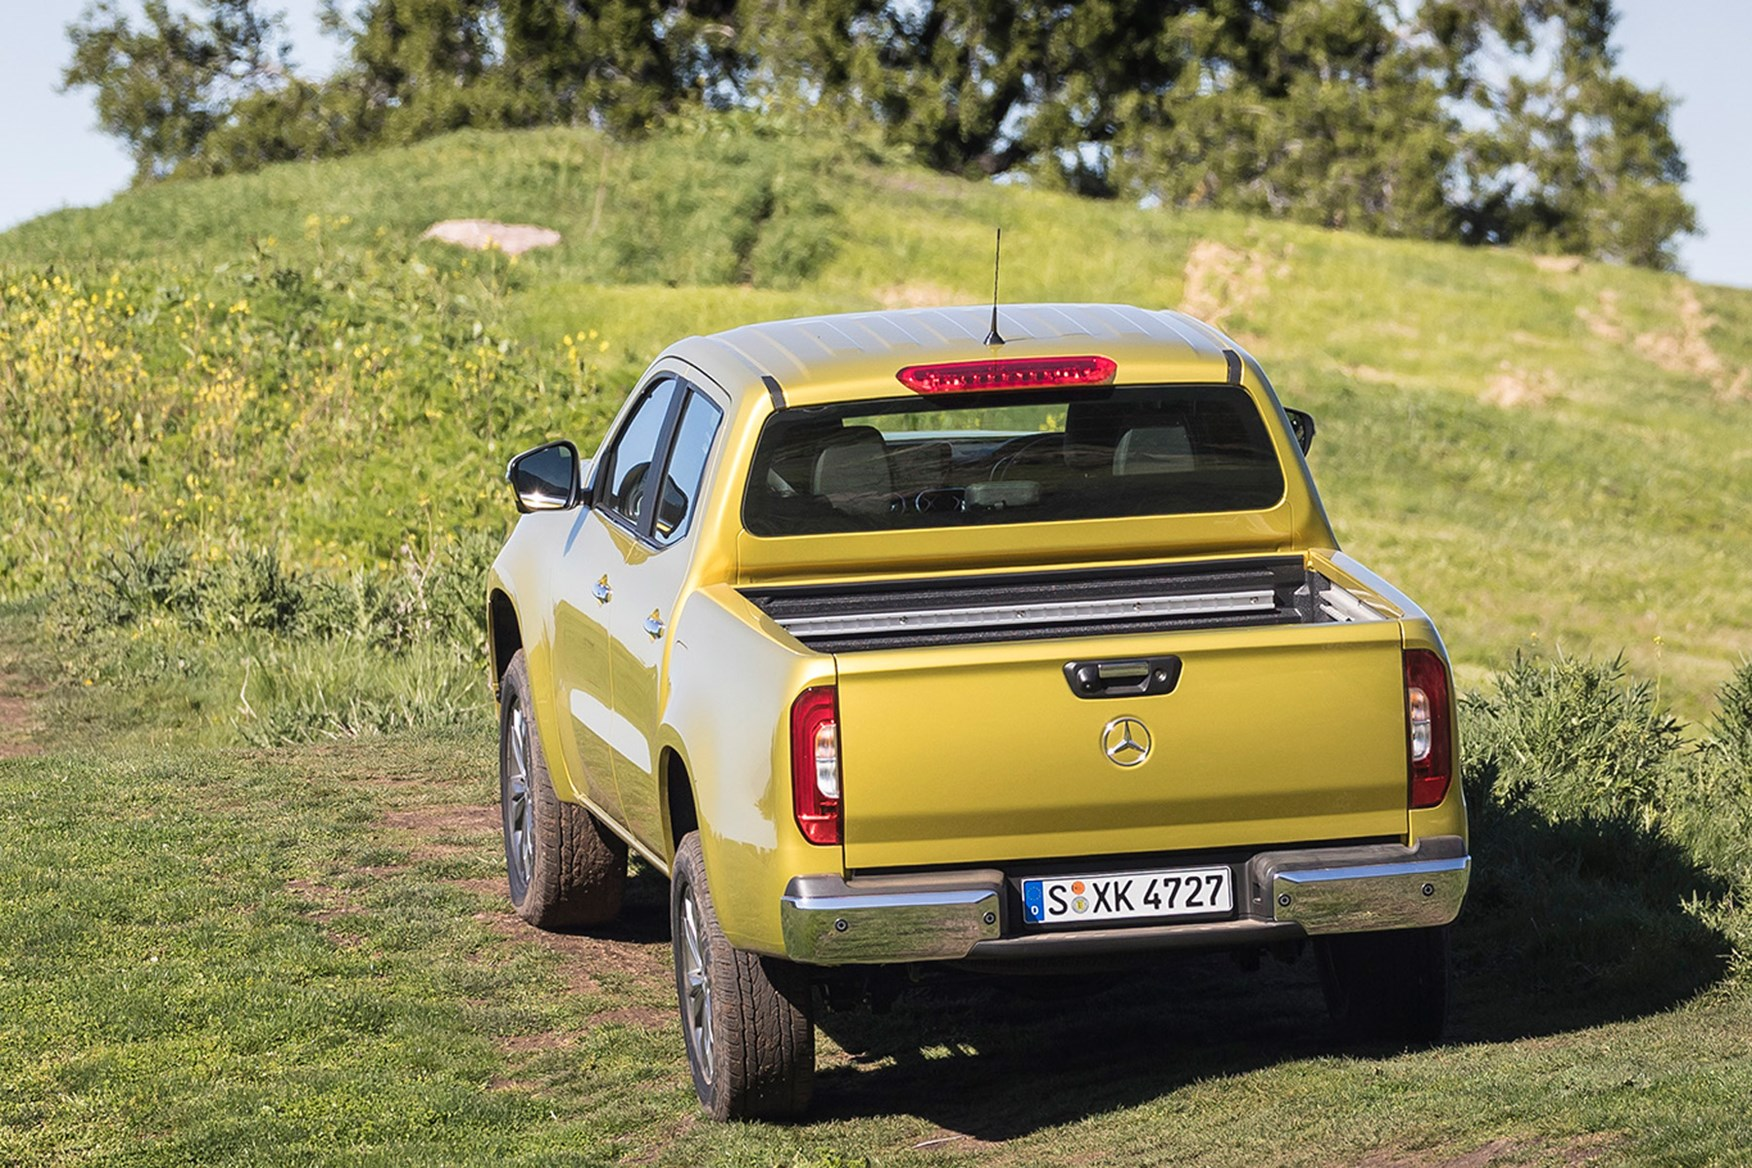 Mercedes-Benz X-Class full review on Parkers Vans - off-road rear